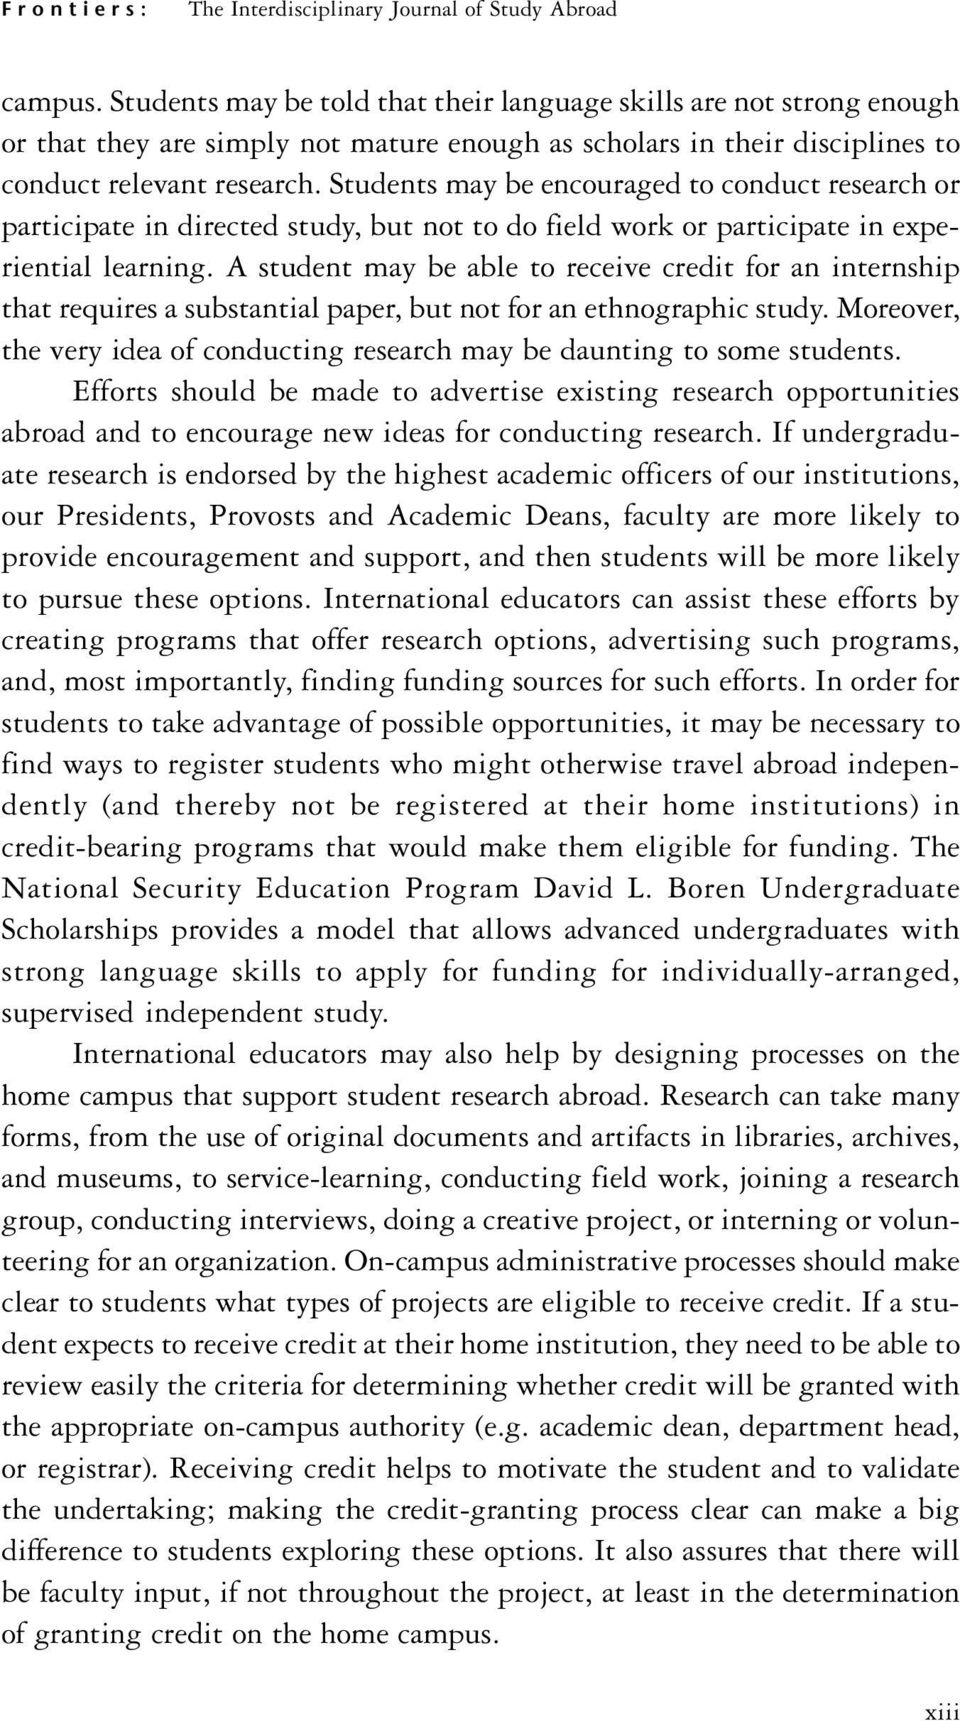 Students may be encouraged to conduct research or participate in directed study, but not to do field work or participate in experiential learning.